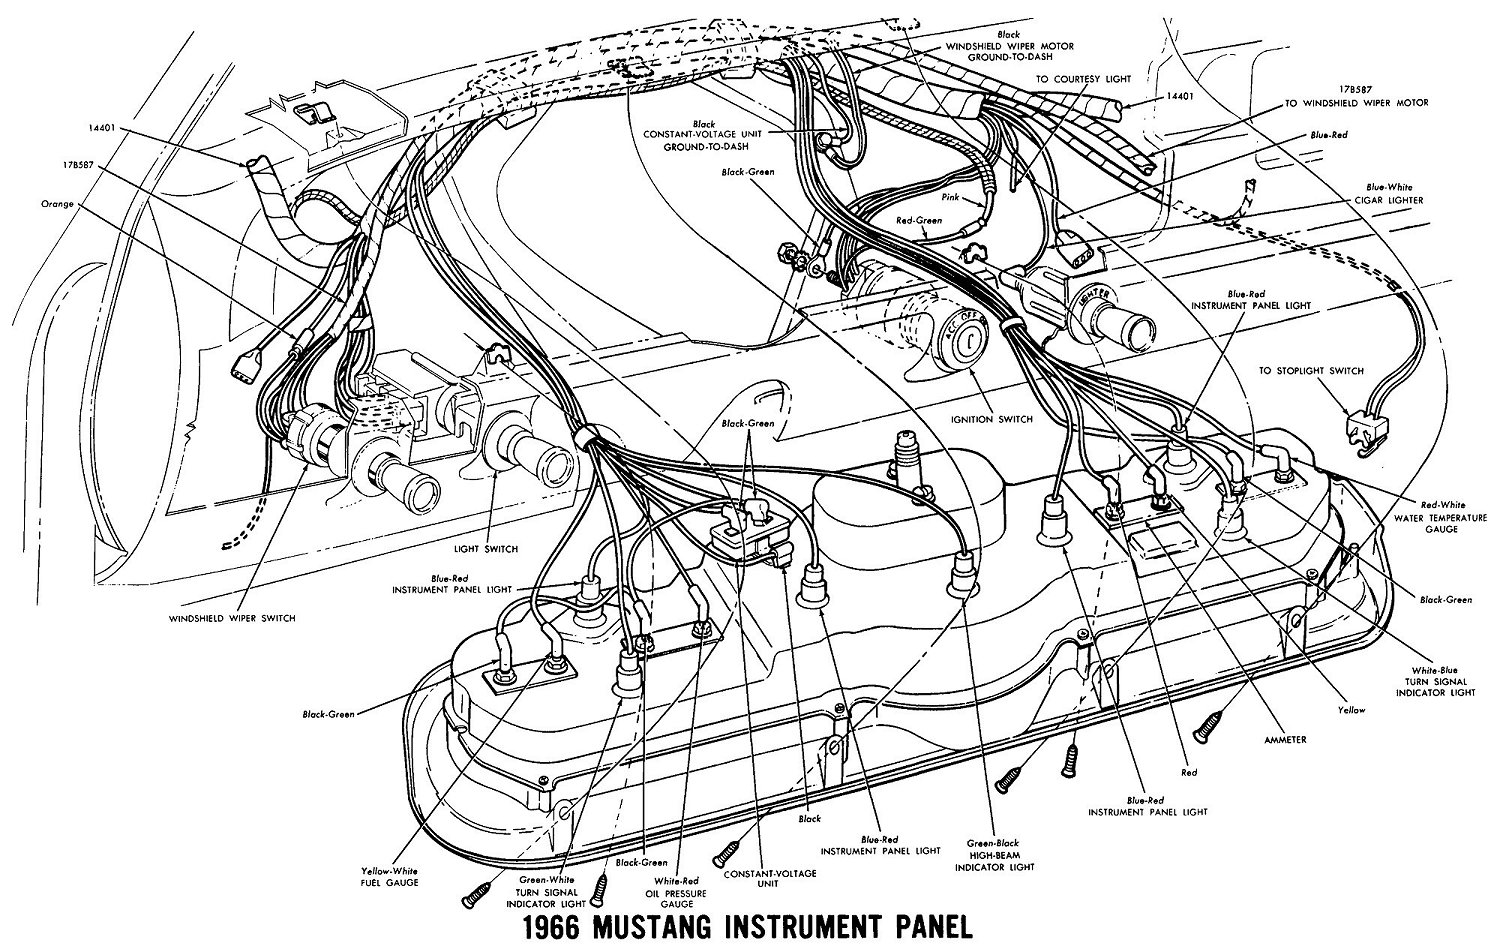 1966 Mustang Wiring Diagrams on 1974 chevy truck instrument cluster wiring diagram